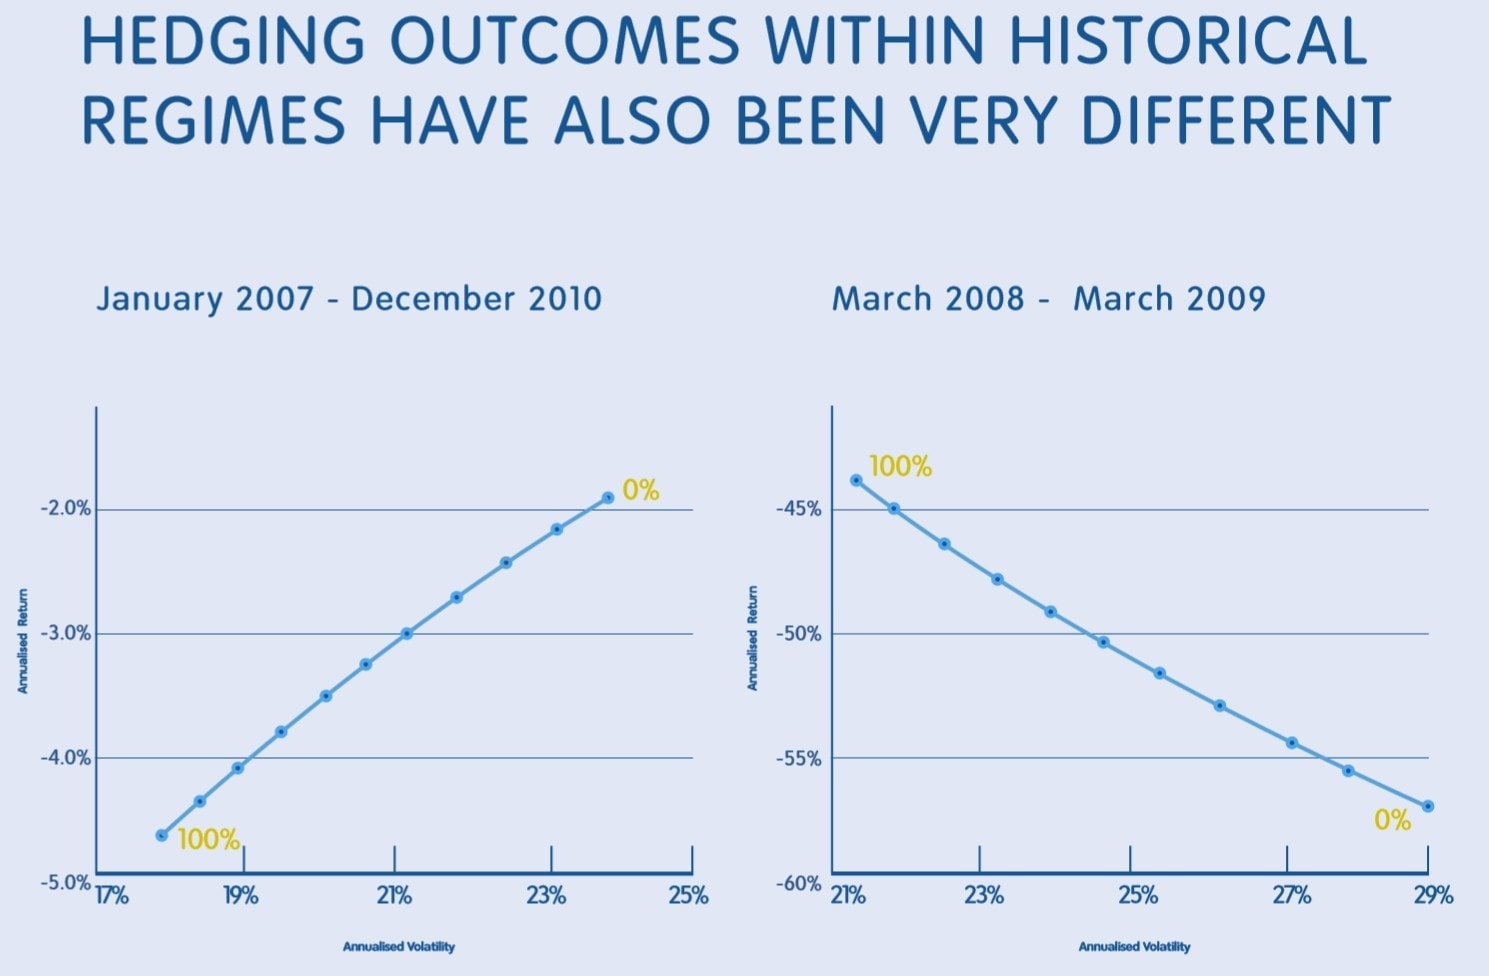 hedging outcomes within historical regimes have also been very different